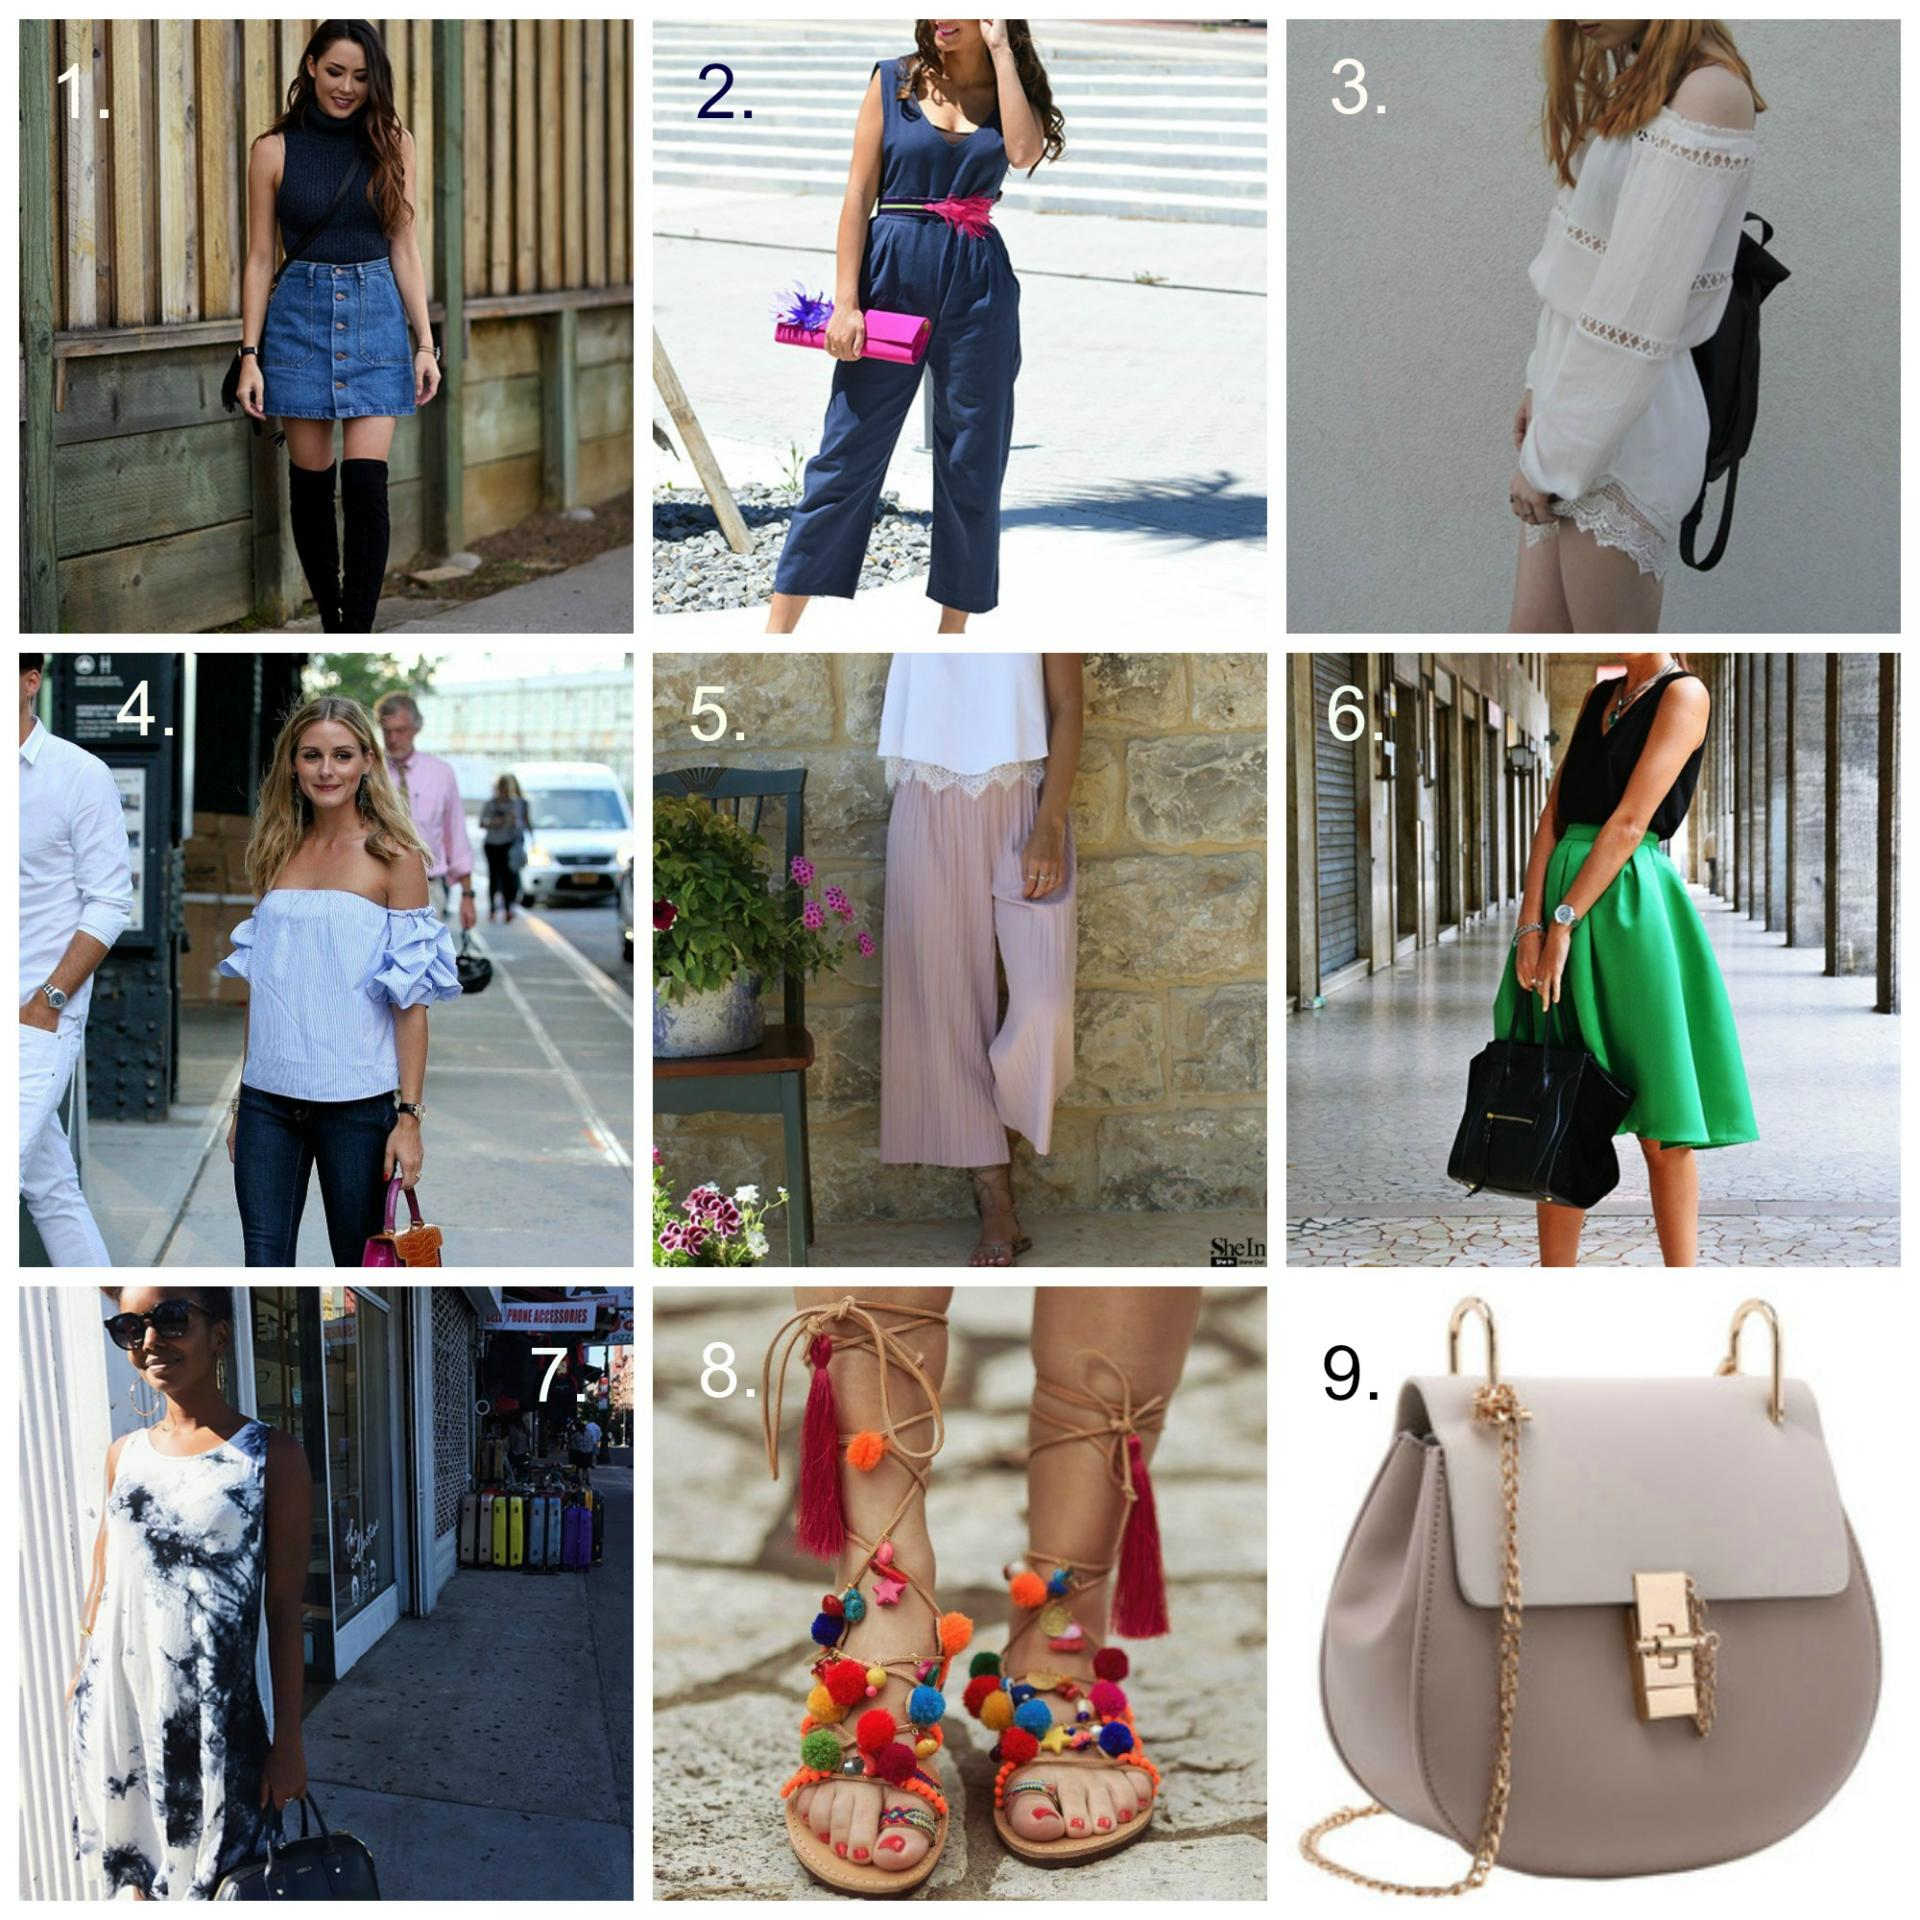 Summer Style Needs and Wants | www.styledomination.com